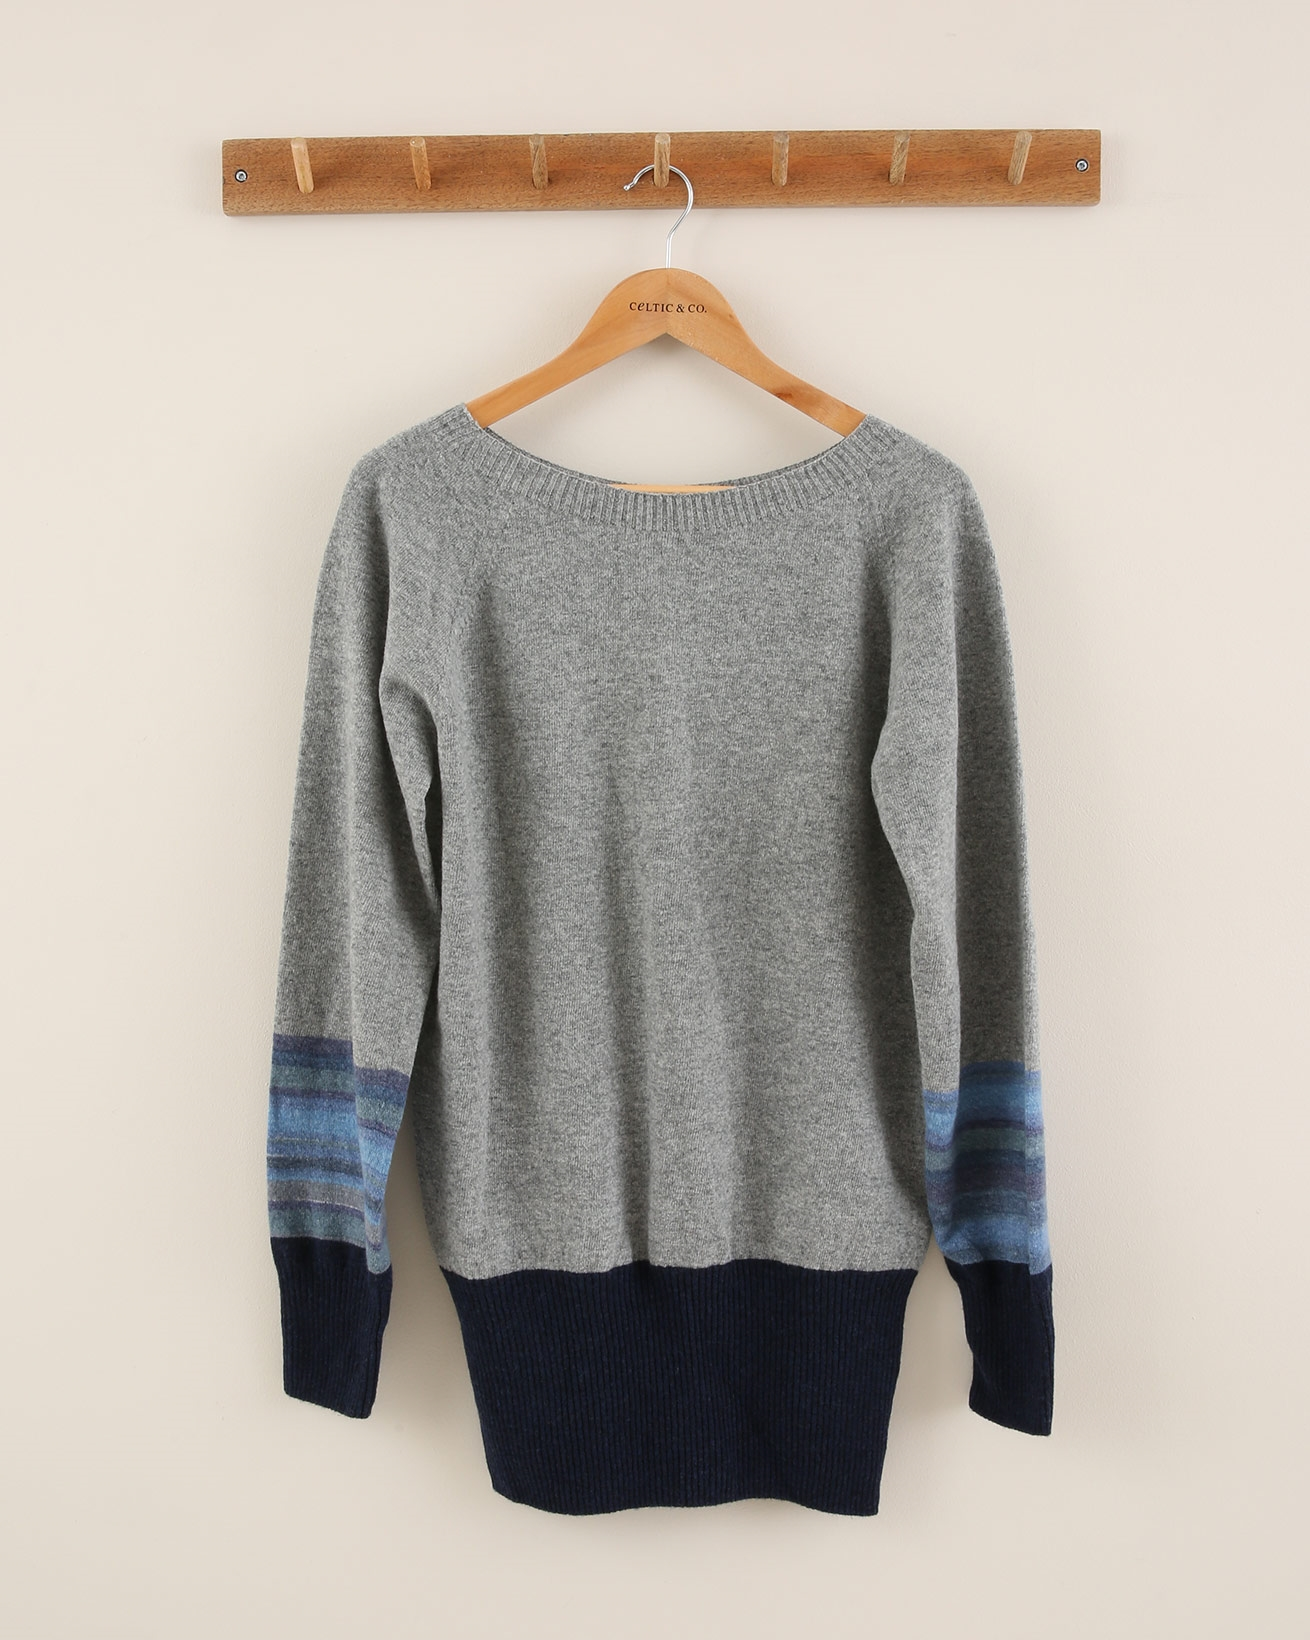 Supersoft Slouch Jumper - Size Small - Derby Grey / Blue Ombre - 1876